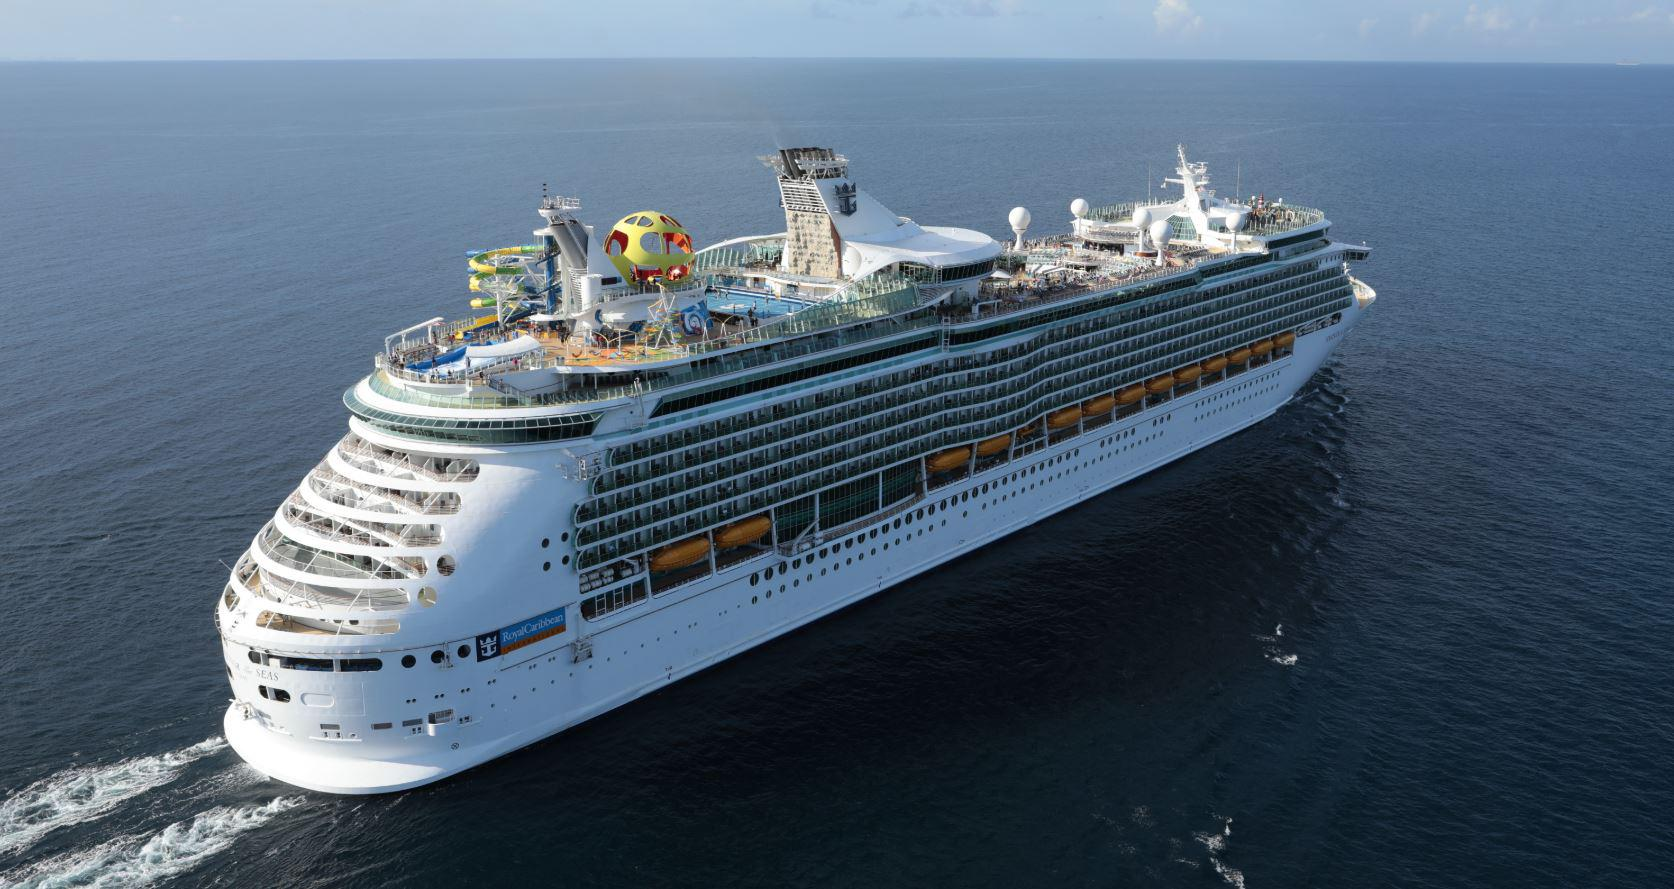 Review: Royal Caribbean's Mariner of the Seas Three-Day Weekend Cruise (thedailymeal.com)